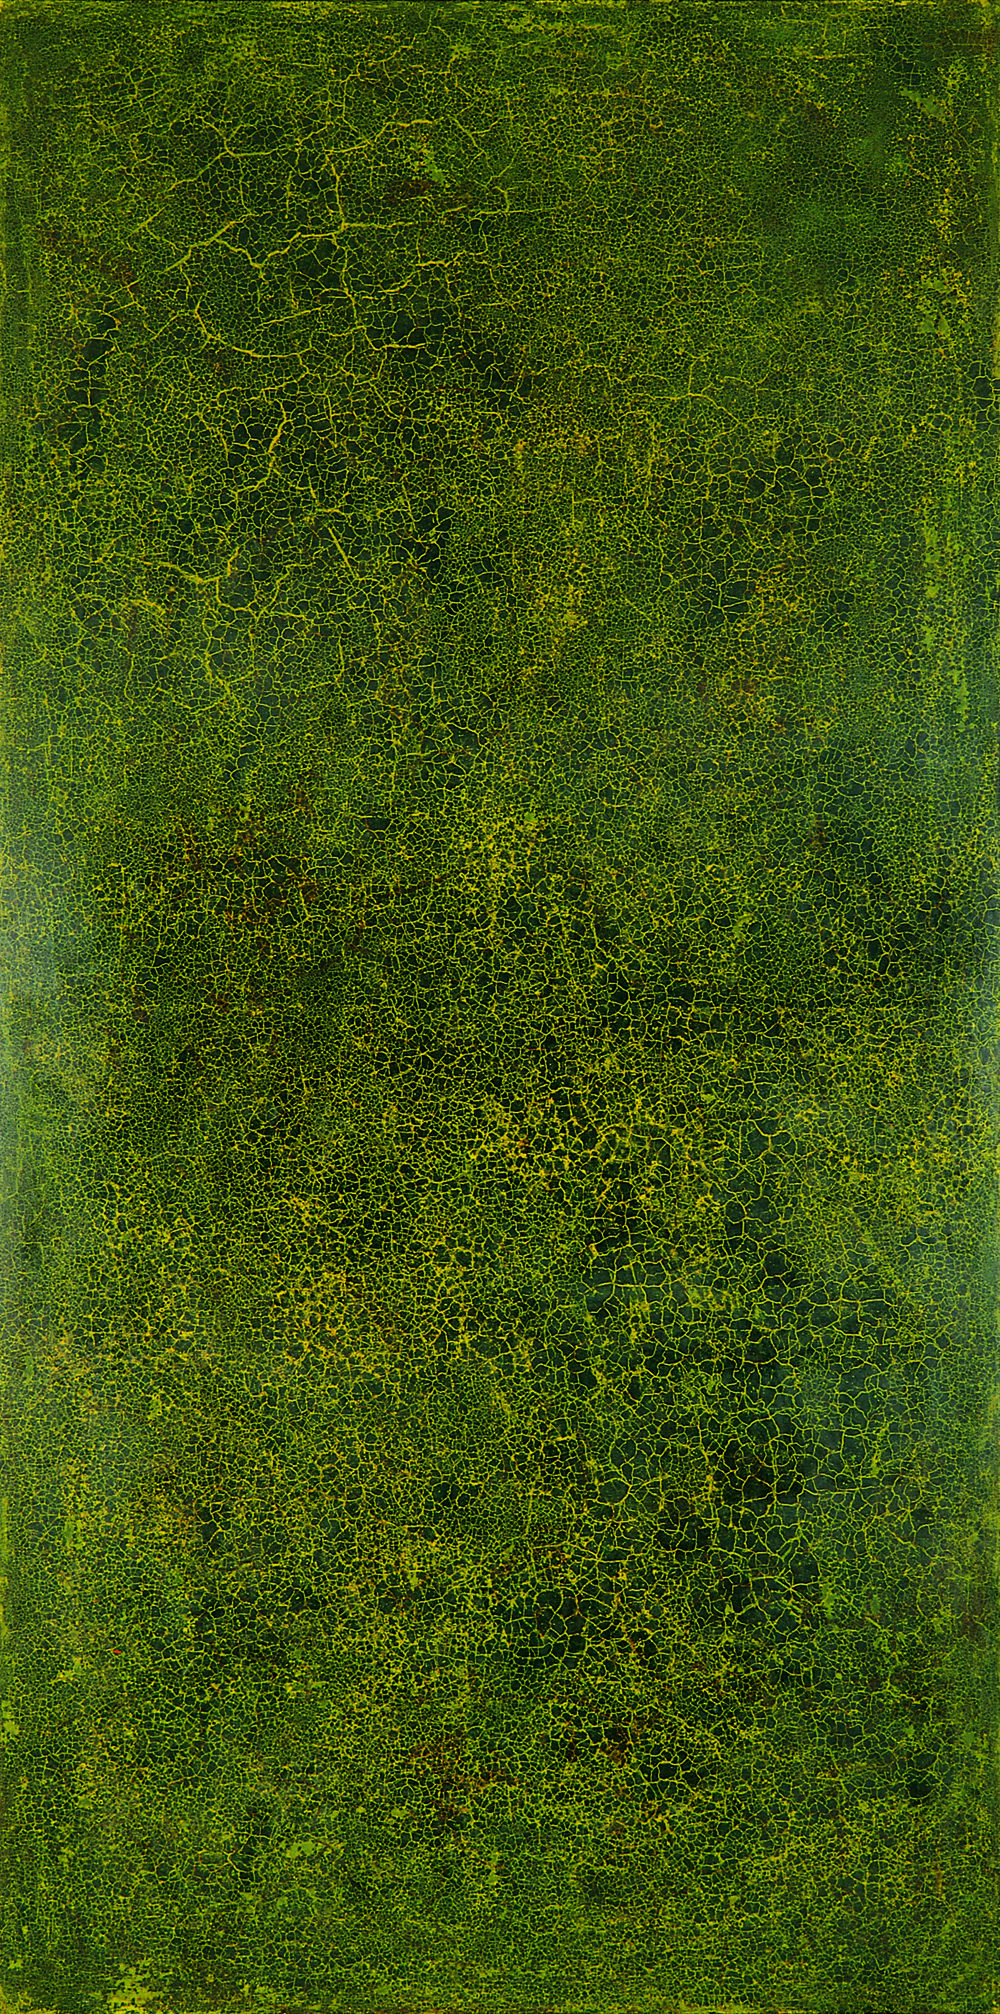 Krakelering # 2 . 1995. Lacquer, oil and pigment on birch plywood. 280 x 140 cm.